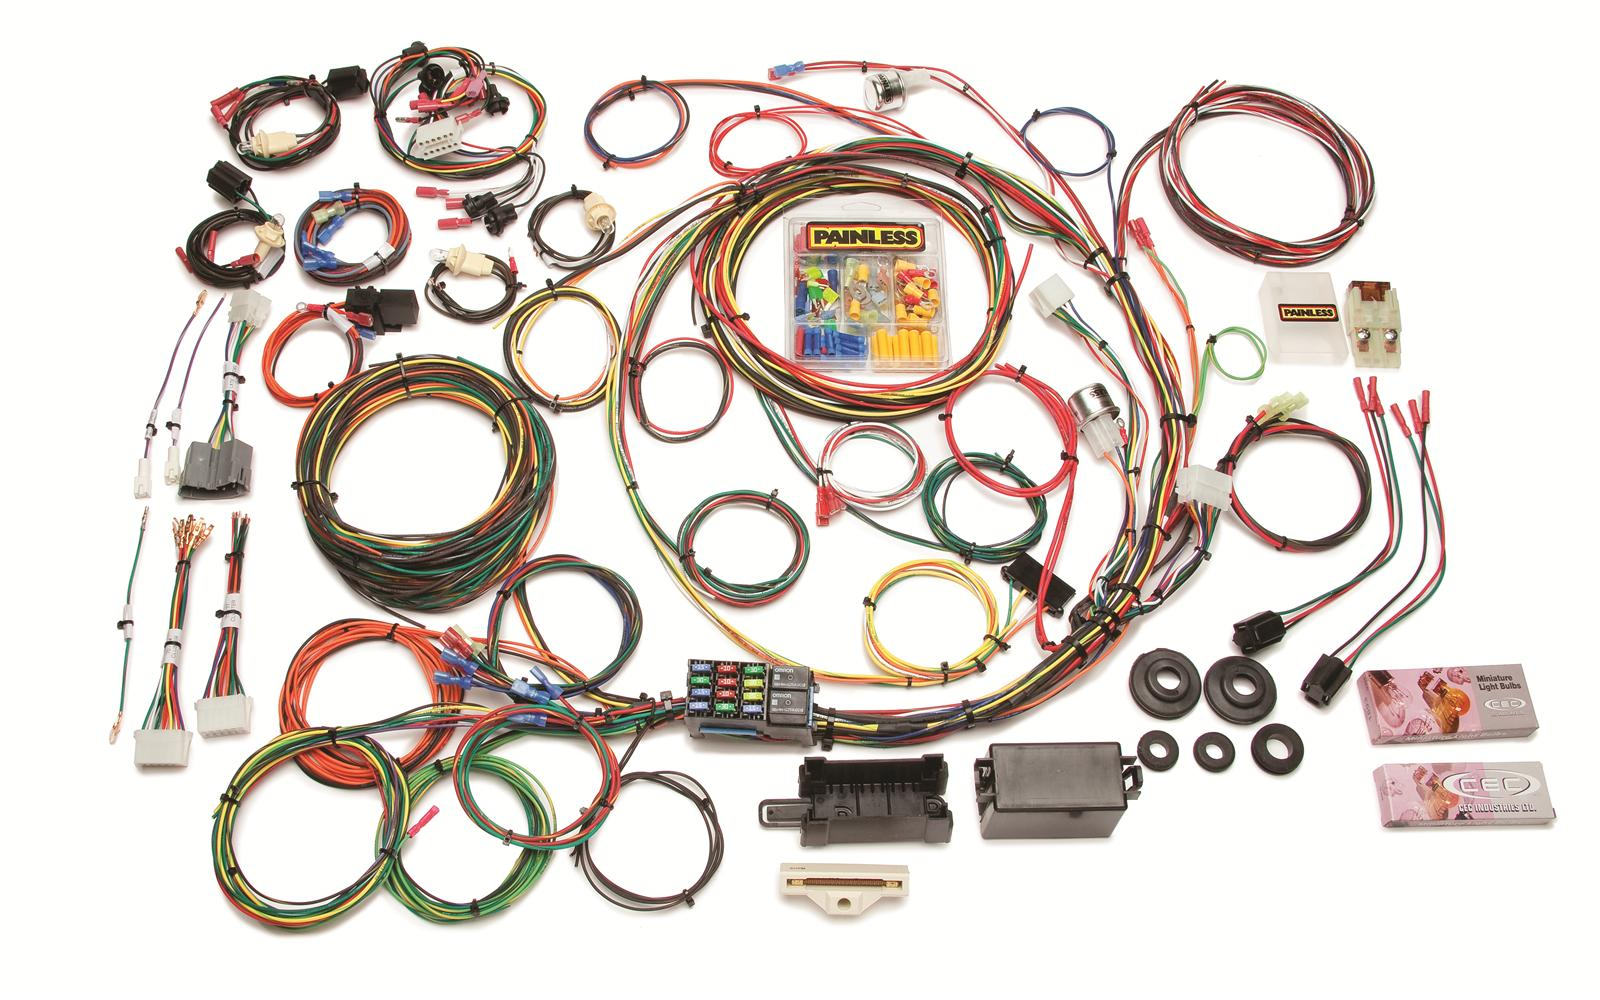 hight resolution of painless performance 21 circuit 1967 1977 direct fit ford f series harnesses 10117 free shipping on orders over 99 at summit racing